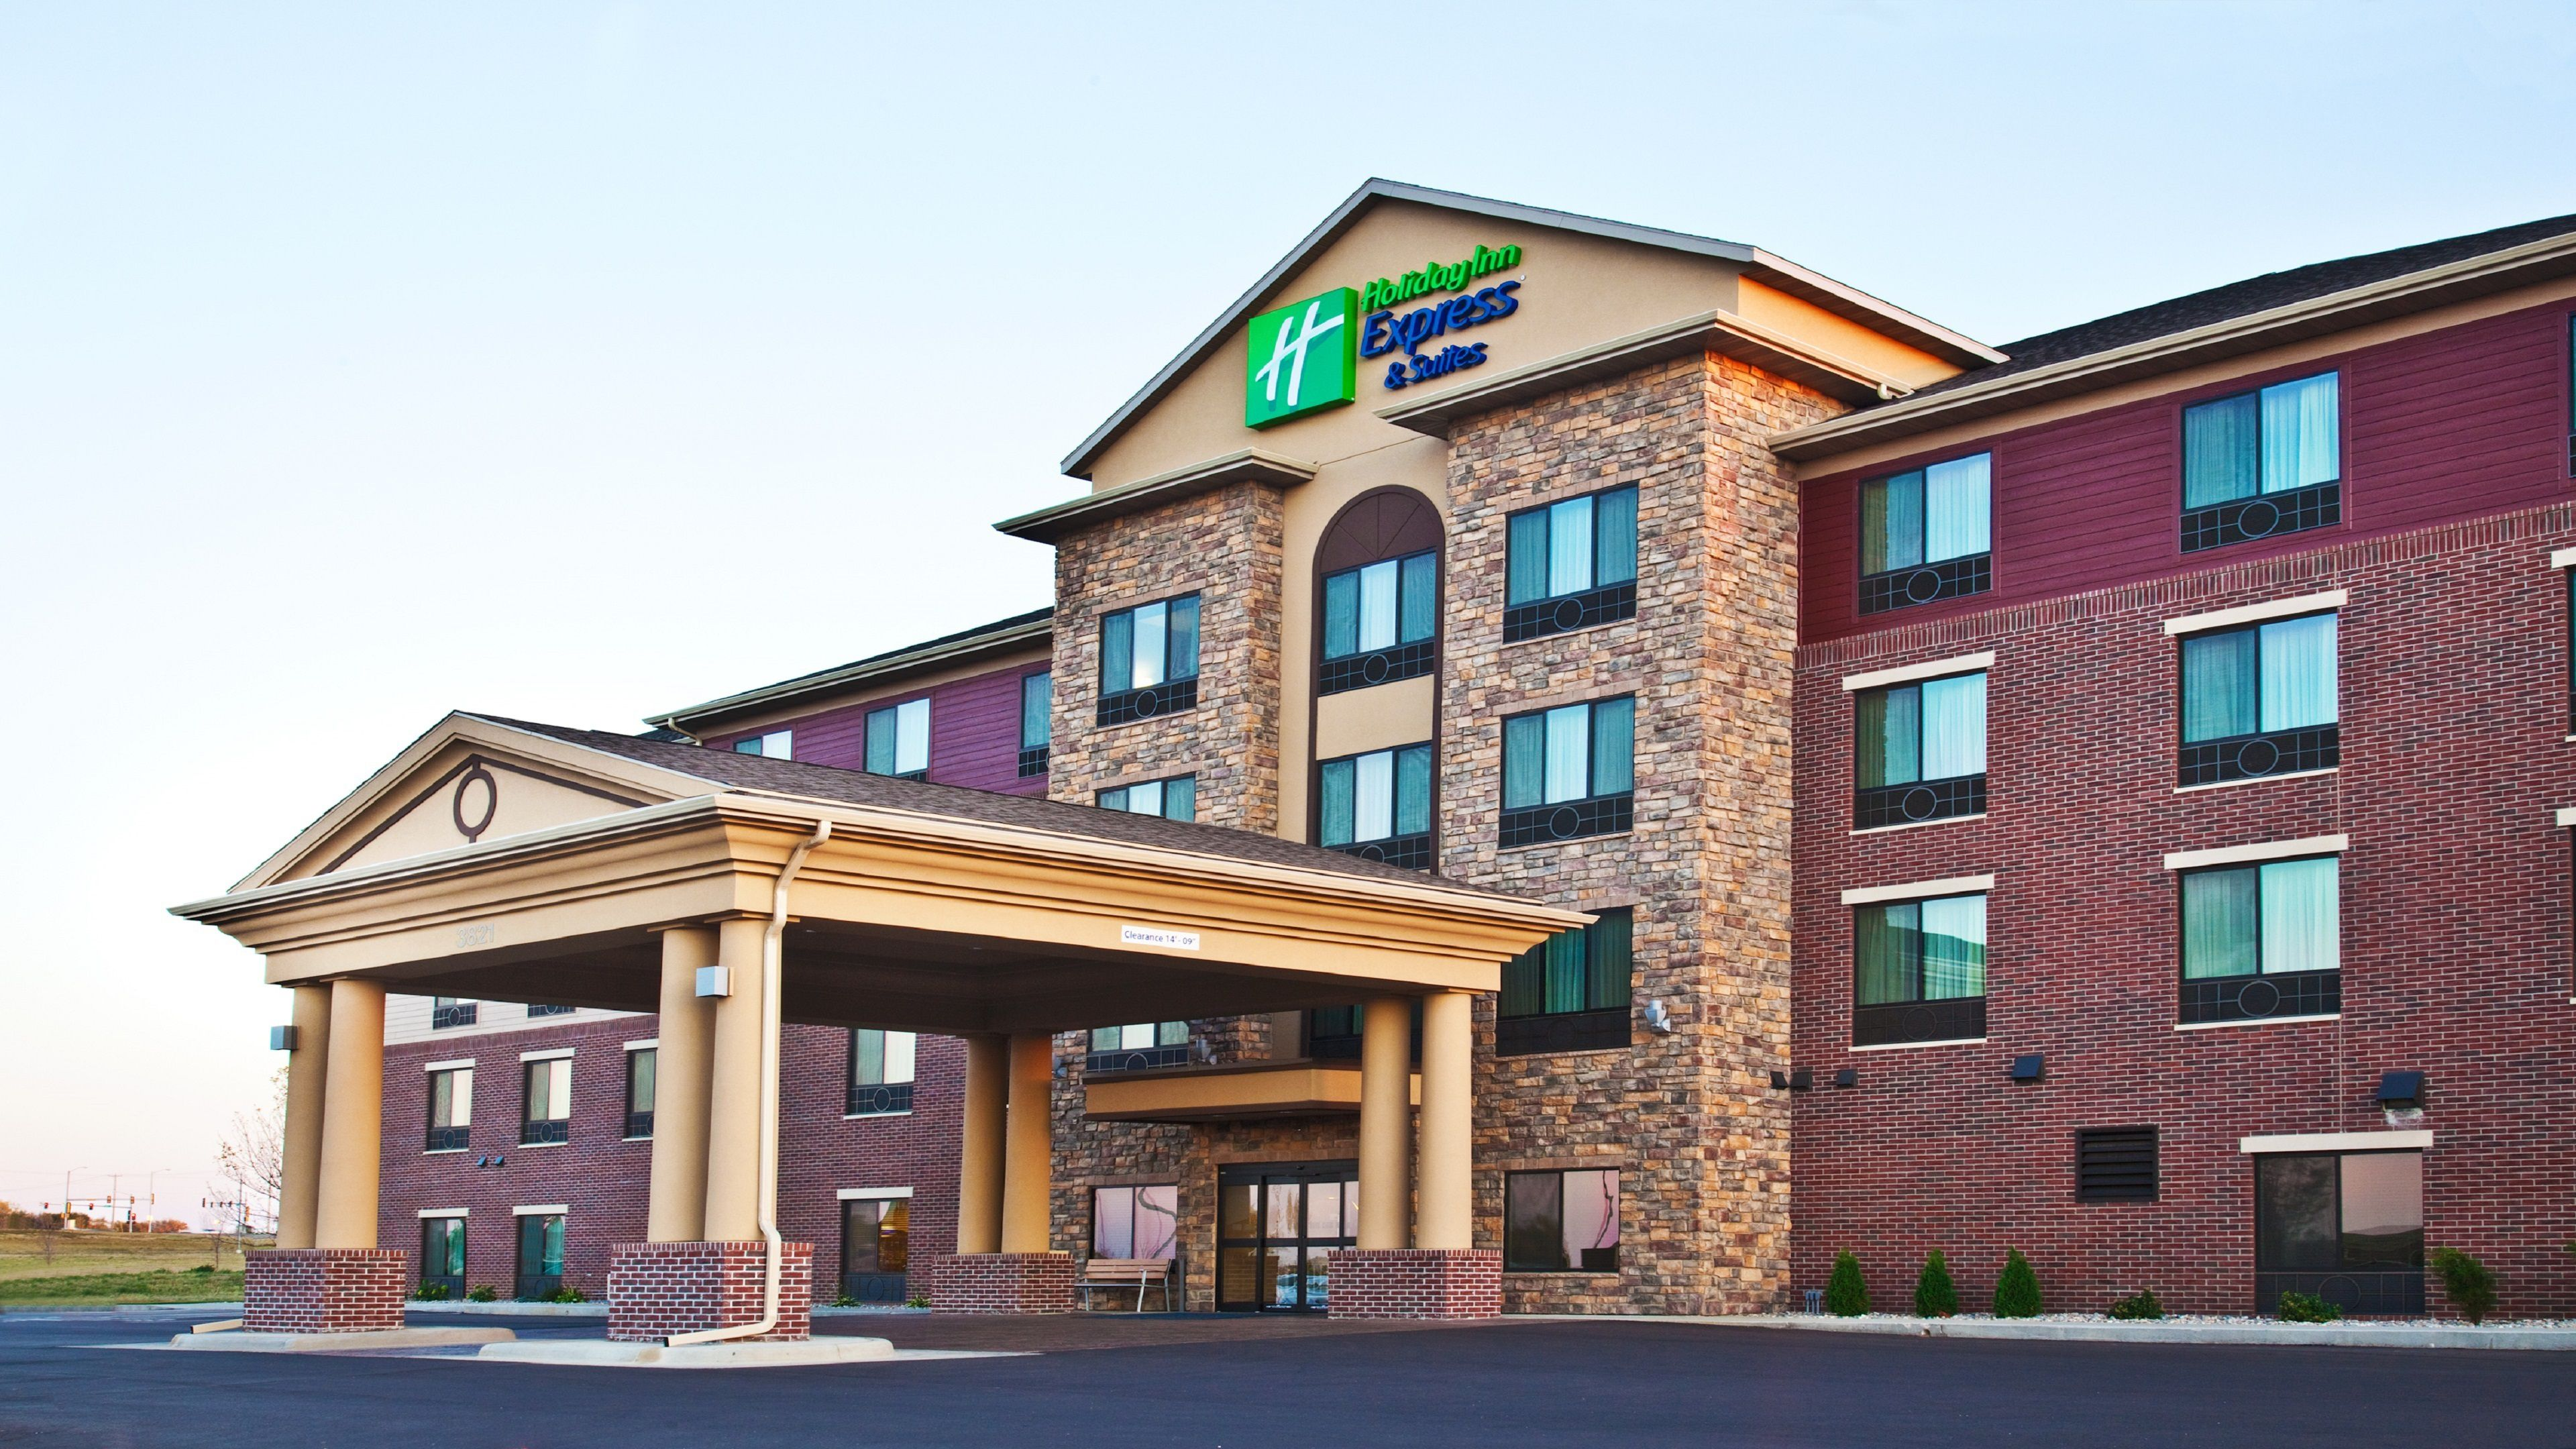 Holiday Inn Express & Suites Sioux Falls At Empire Mall image 3